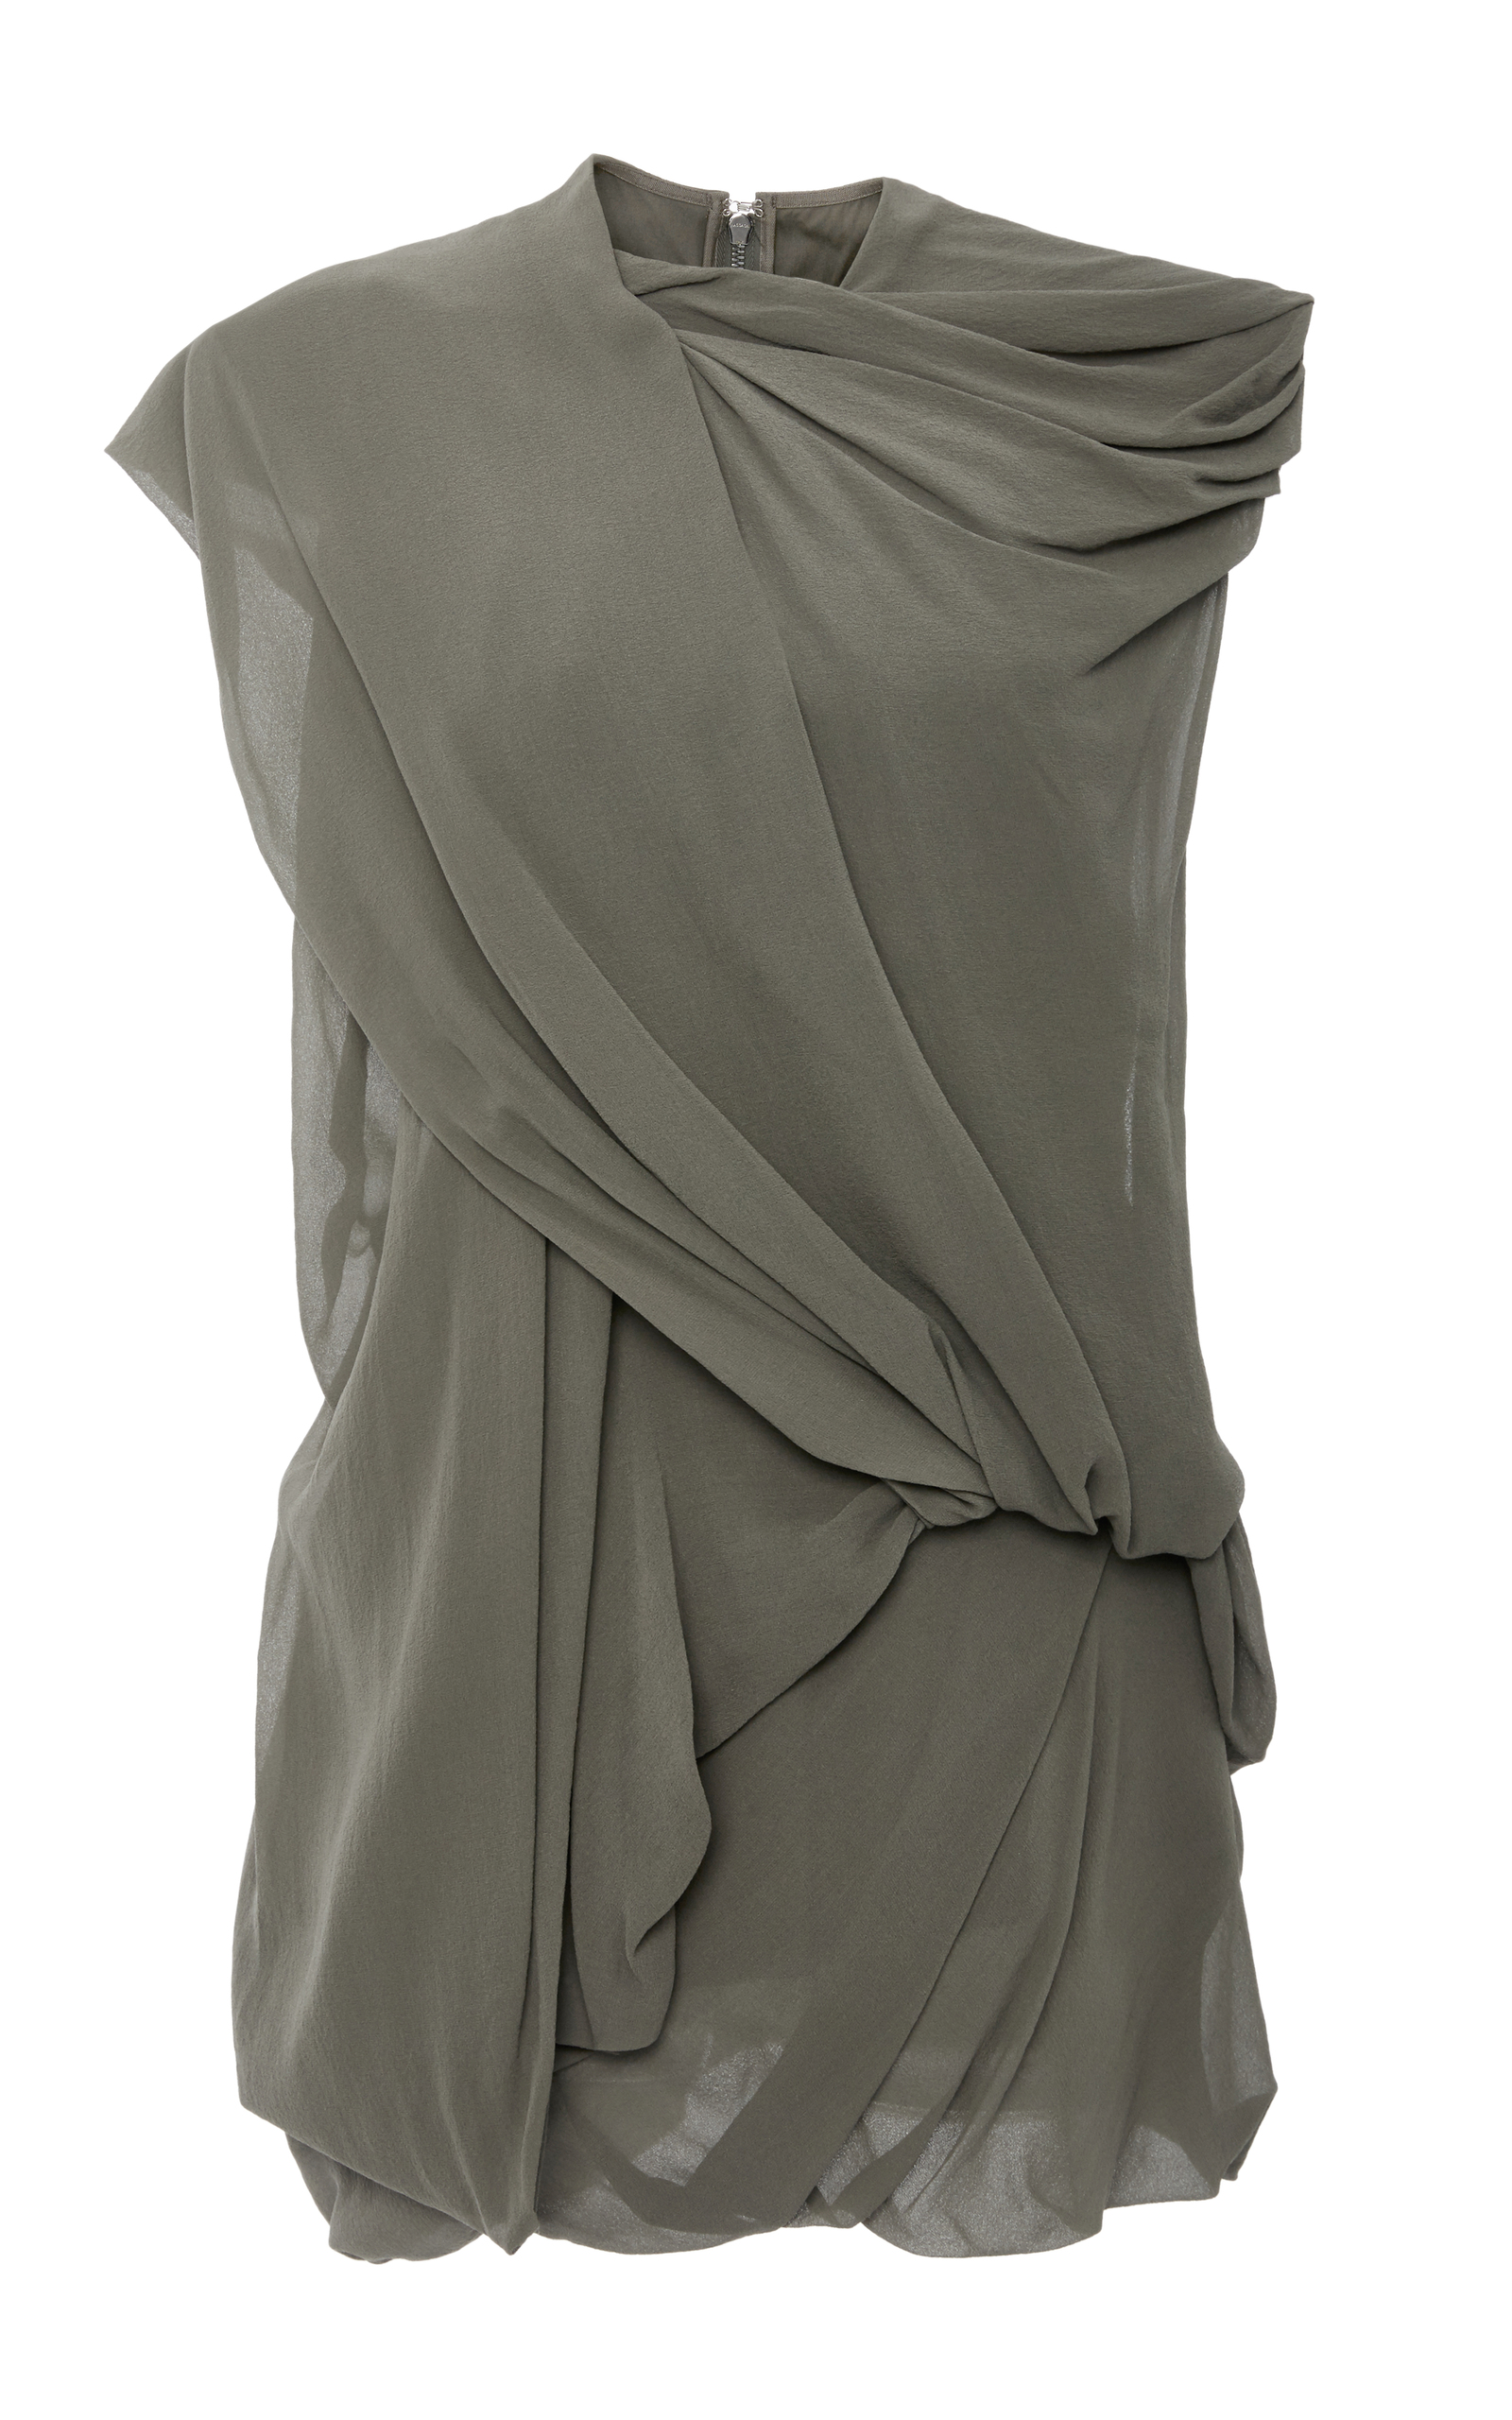 drape drapes in front gallery lyst normal pink camuto draped blouse top clothing sleeveless fuschia product vince drapefront